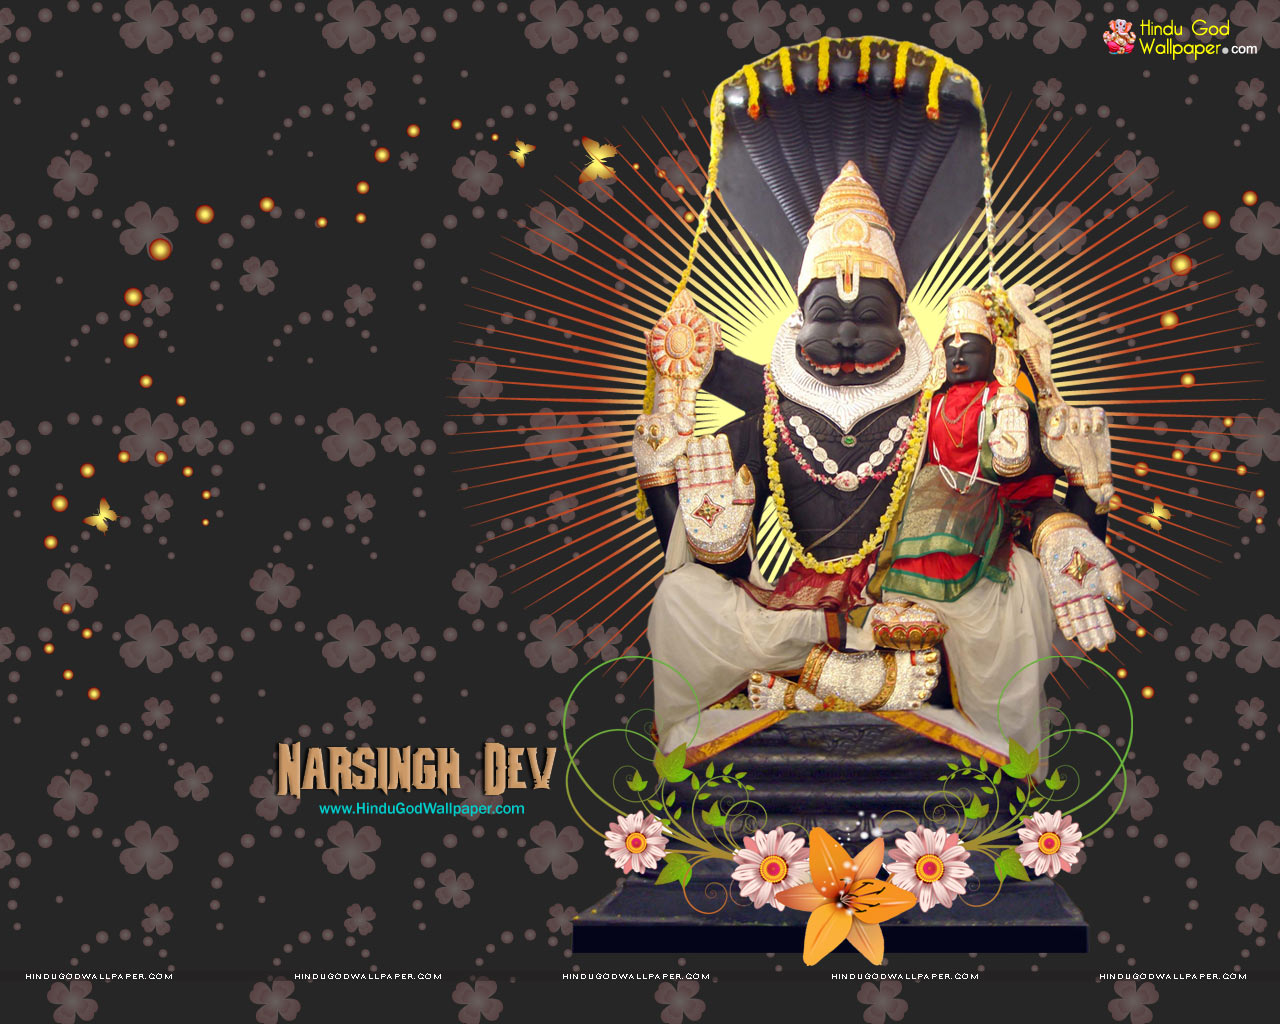 laxmi narasimha swamy wallpapers free download